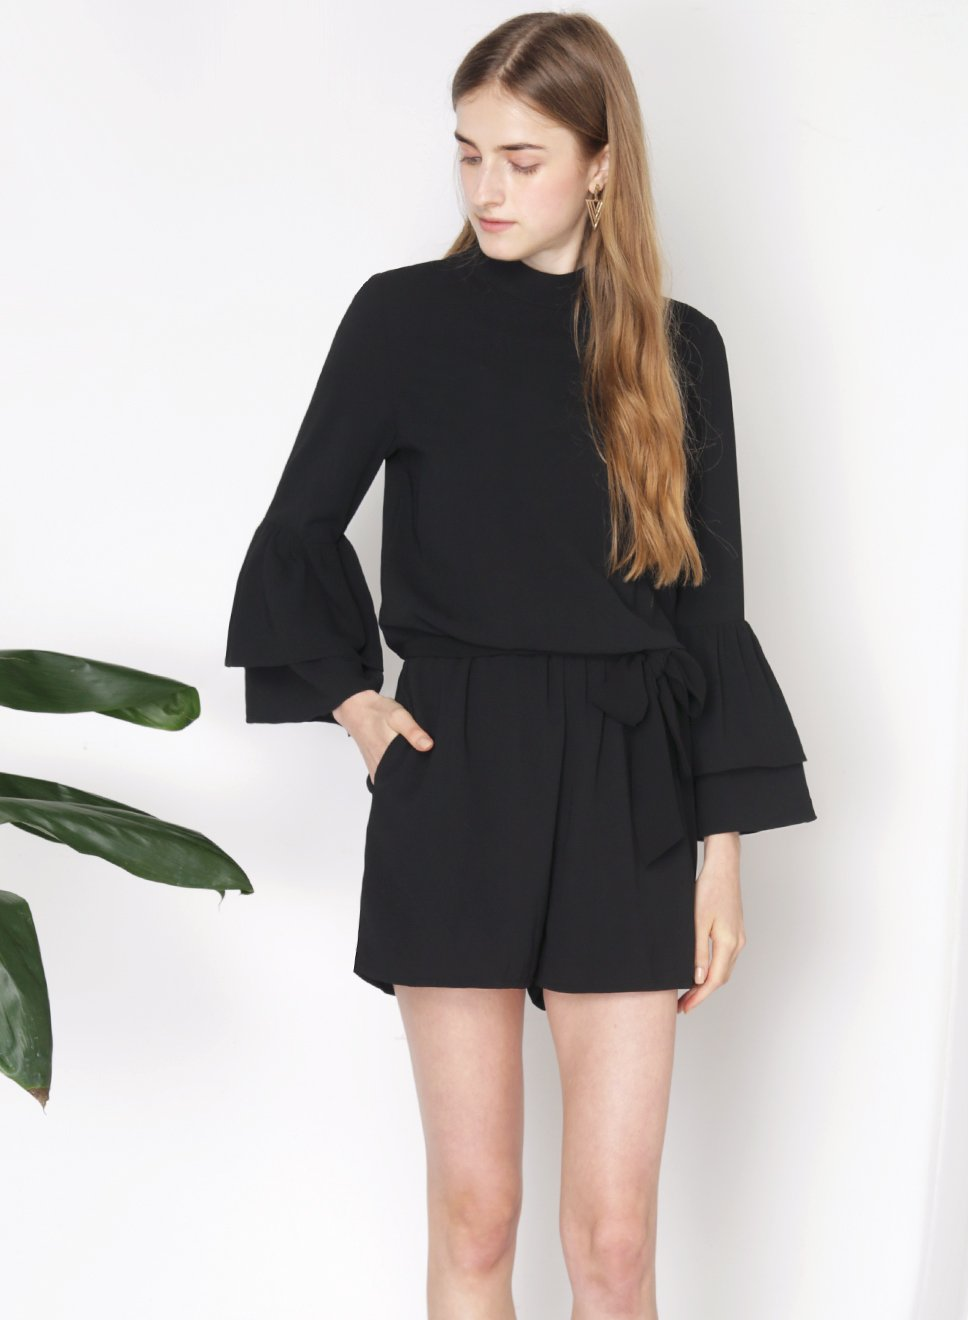 STELLAR Double Tier Ruffle Sleeves Romper (Black) - And Well Dressed